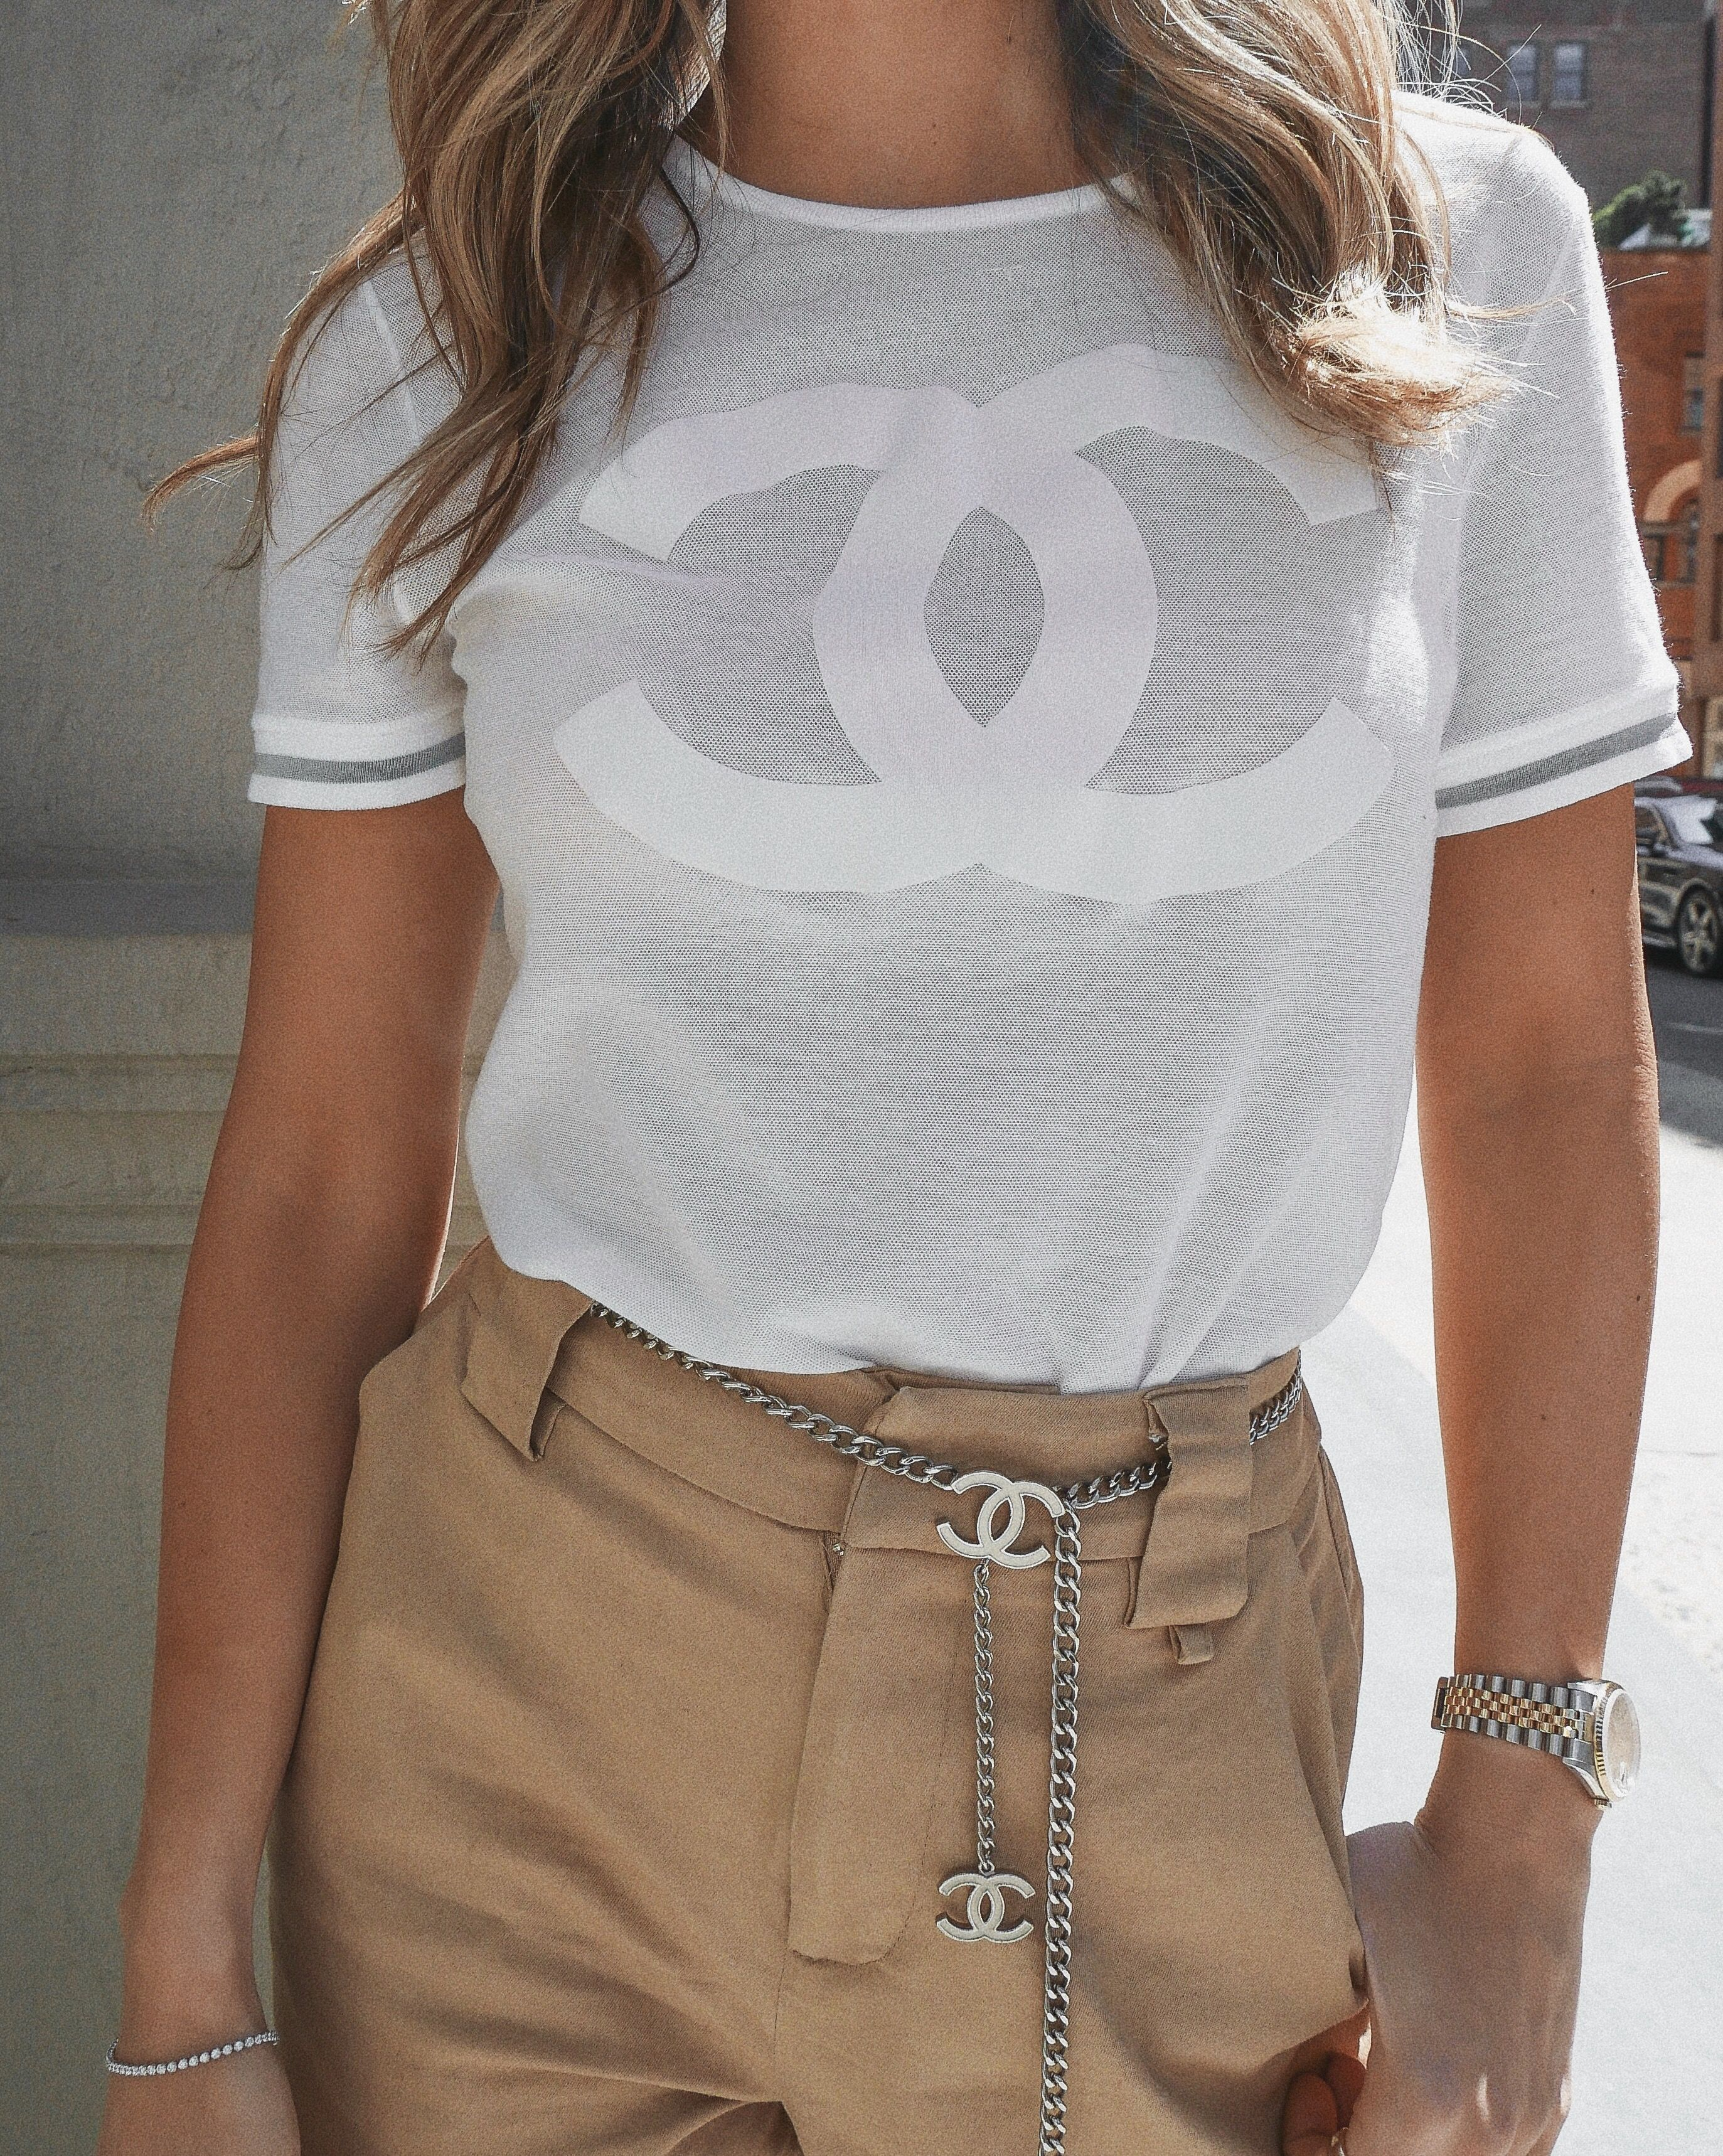 2e64985b68180f Chanel Graphic Tee - Vintage Chanel - Chanel Belt - I.AM.GIA Pants - NYC  Street Style